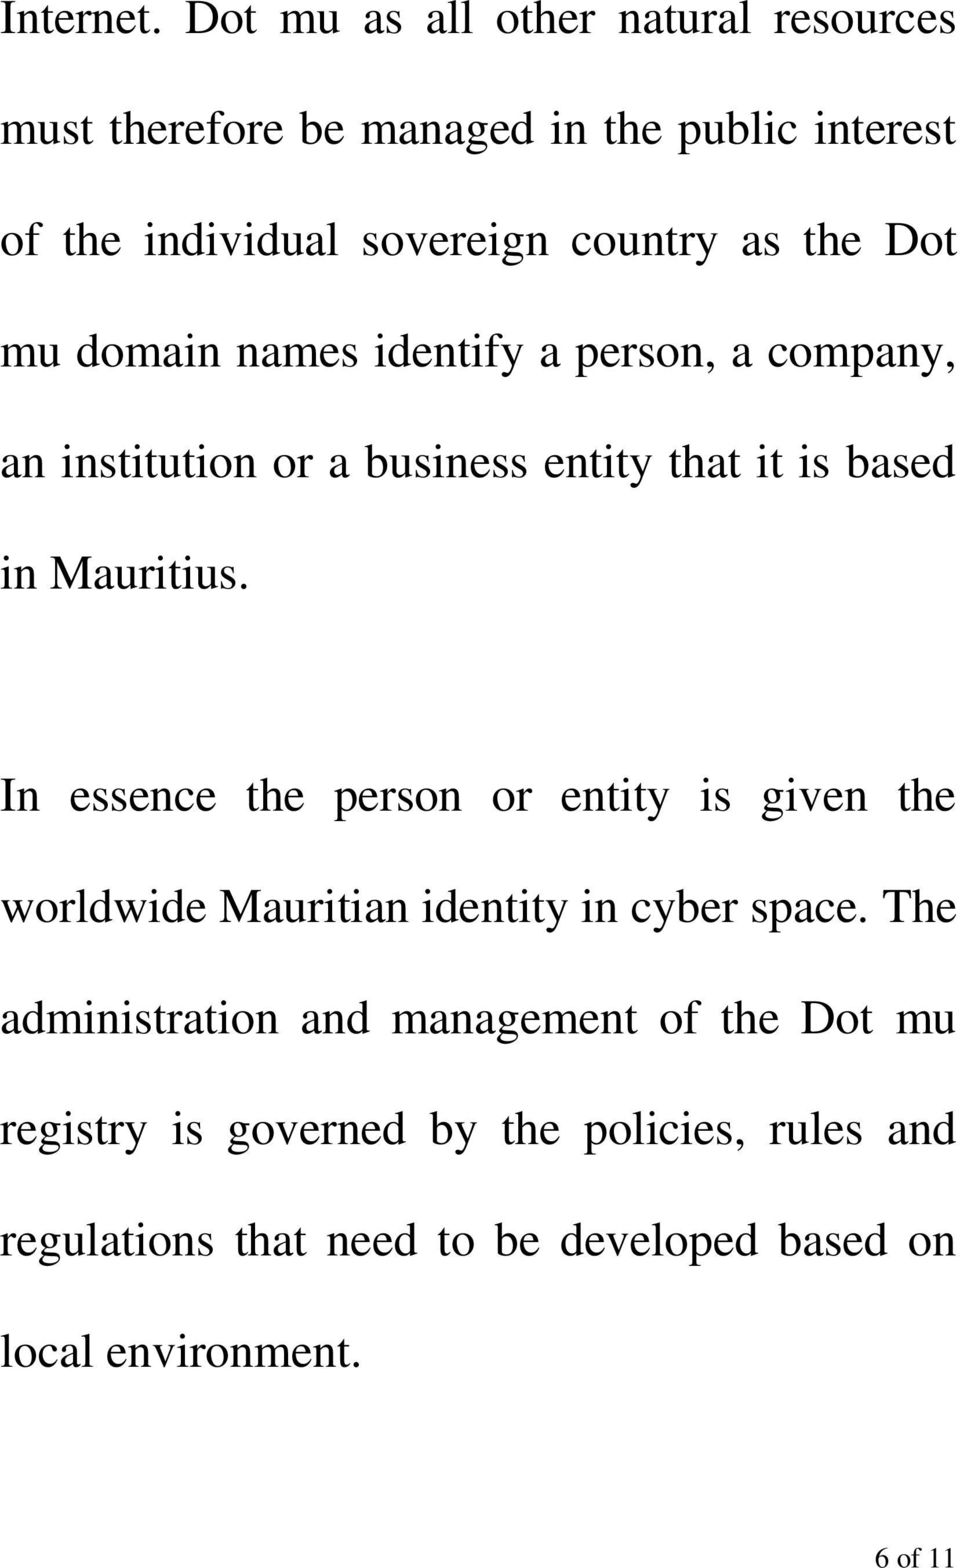 the Dot mu domain names identify a person, a company, an institution or a business entity that it is based in Mauritius.